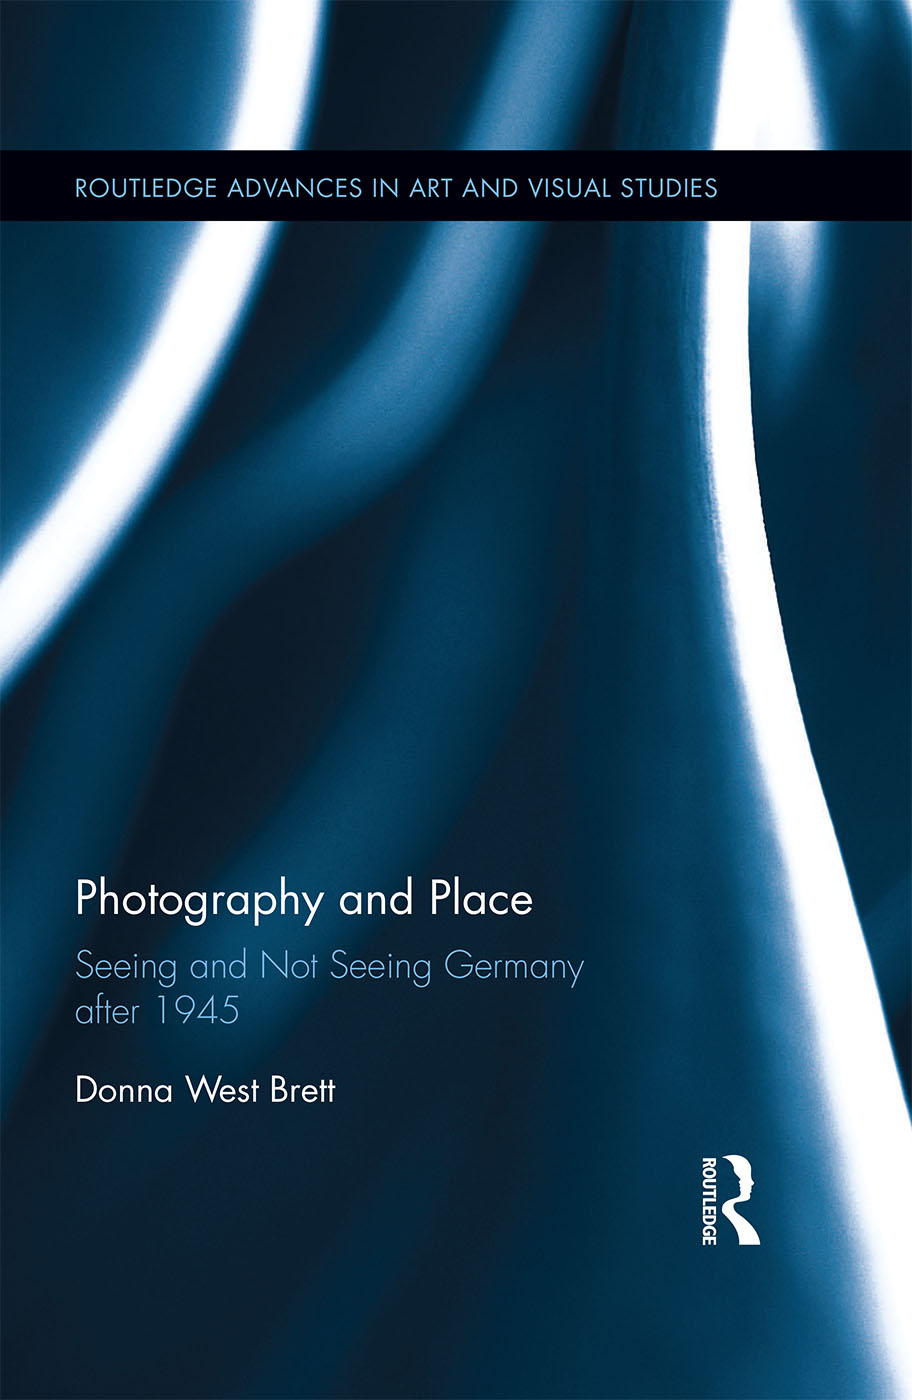 donna west brett   Photography and Place: Seeing and Not Seeing Germany After 1945  (Routledge 2016).